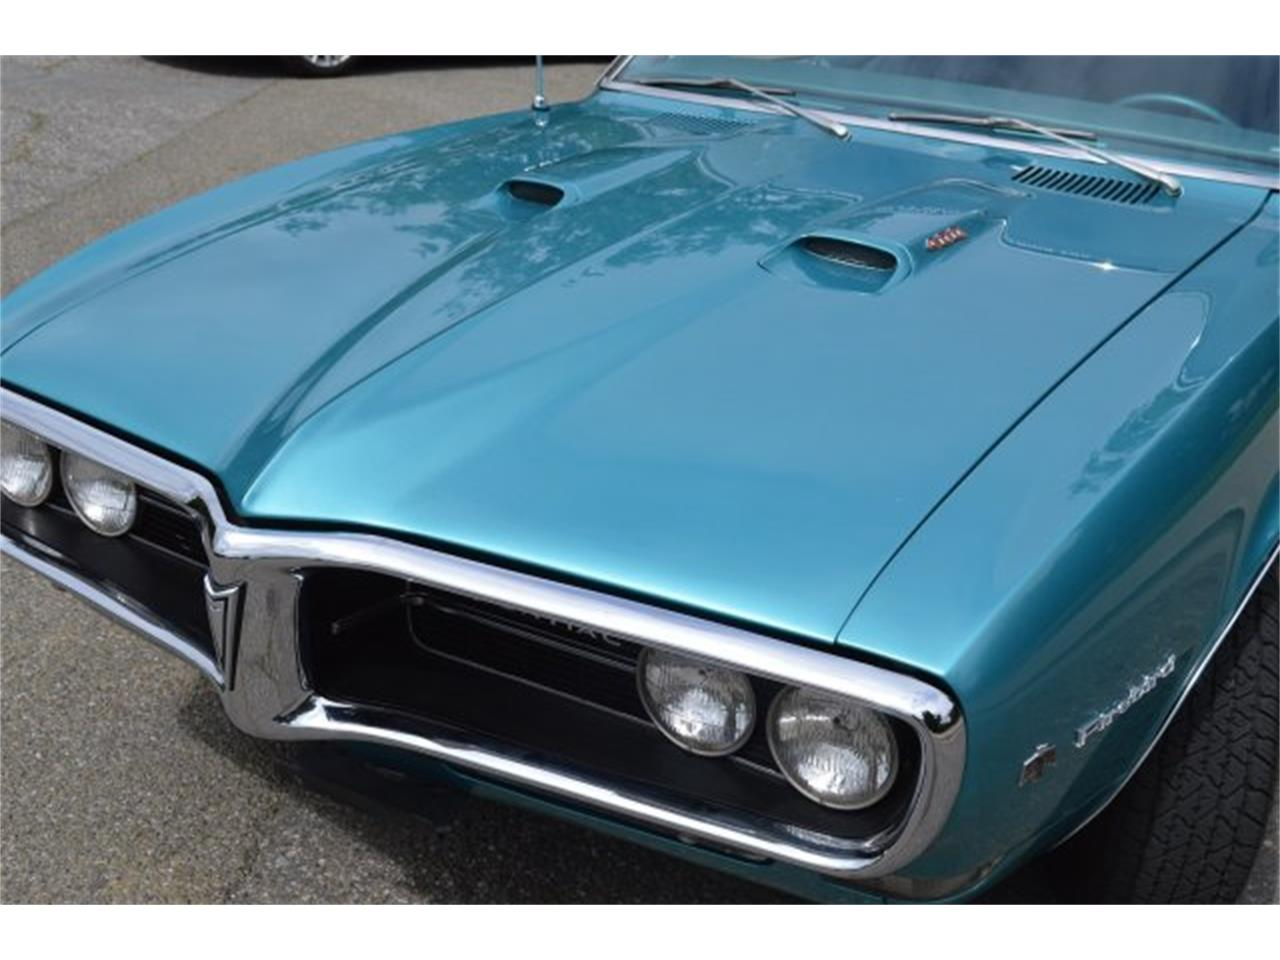 Large Picture of '68 Pontiac Firebird located in San Jose California Auction Vehicle Offered by American Motors Customs and Classics - KV9Z